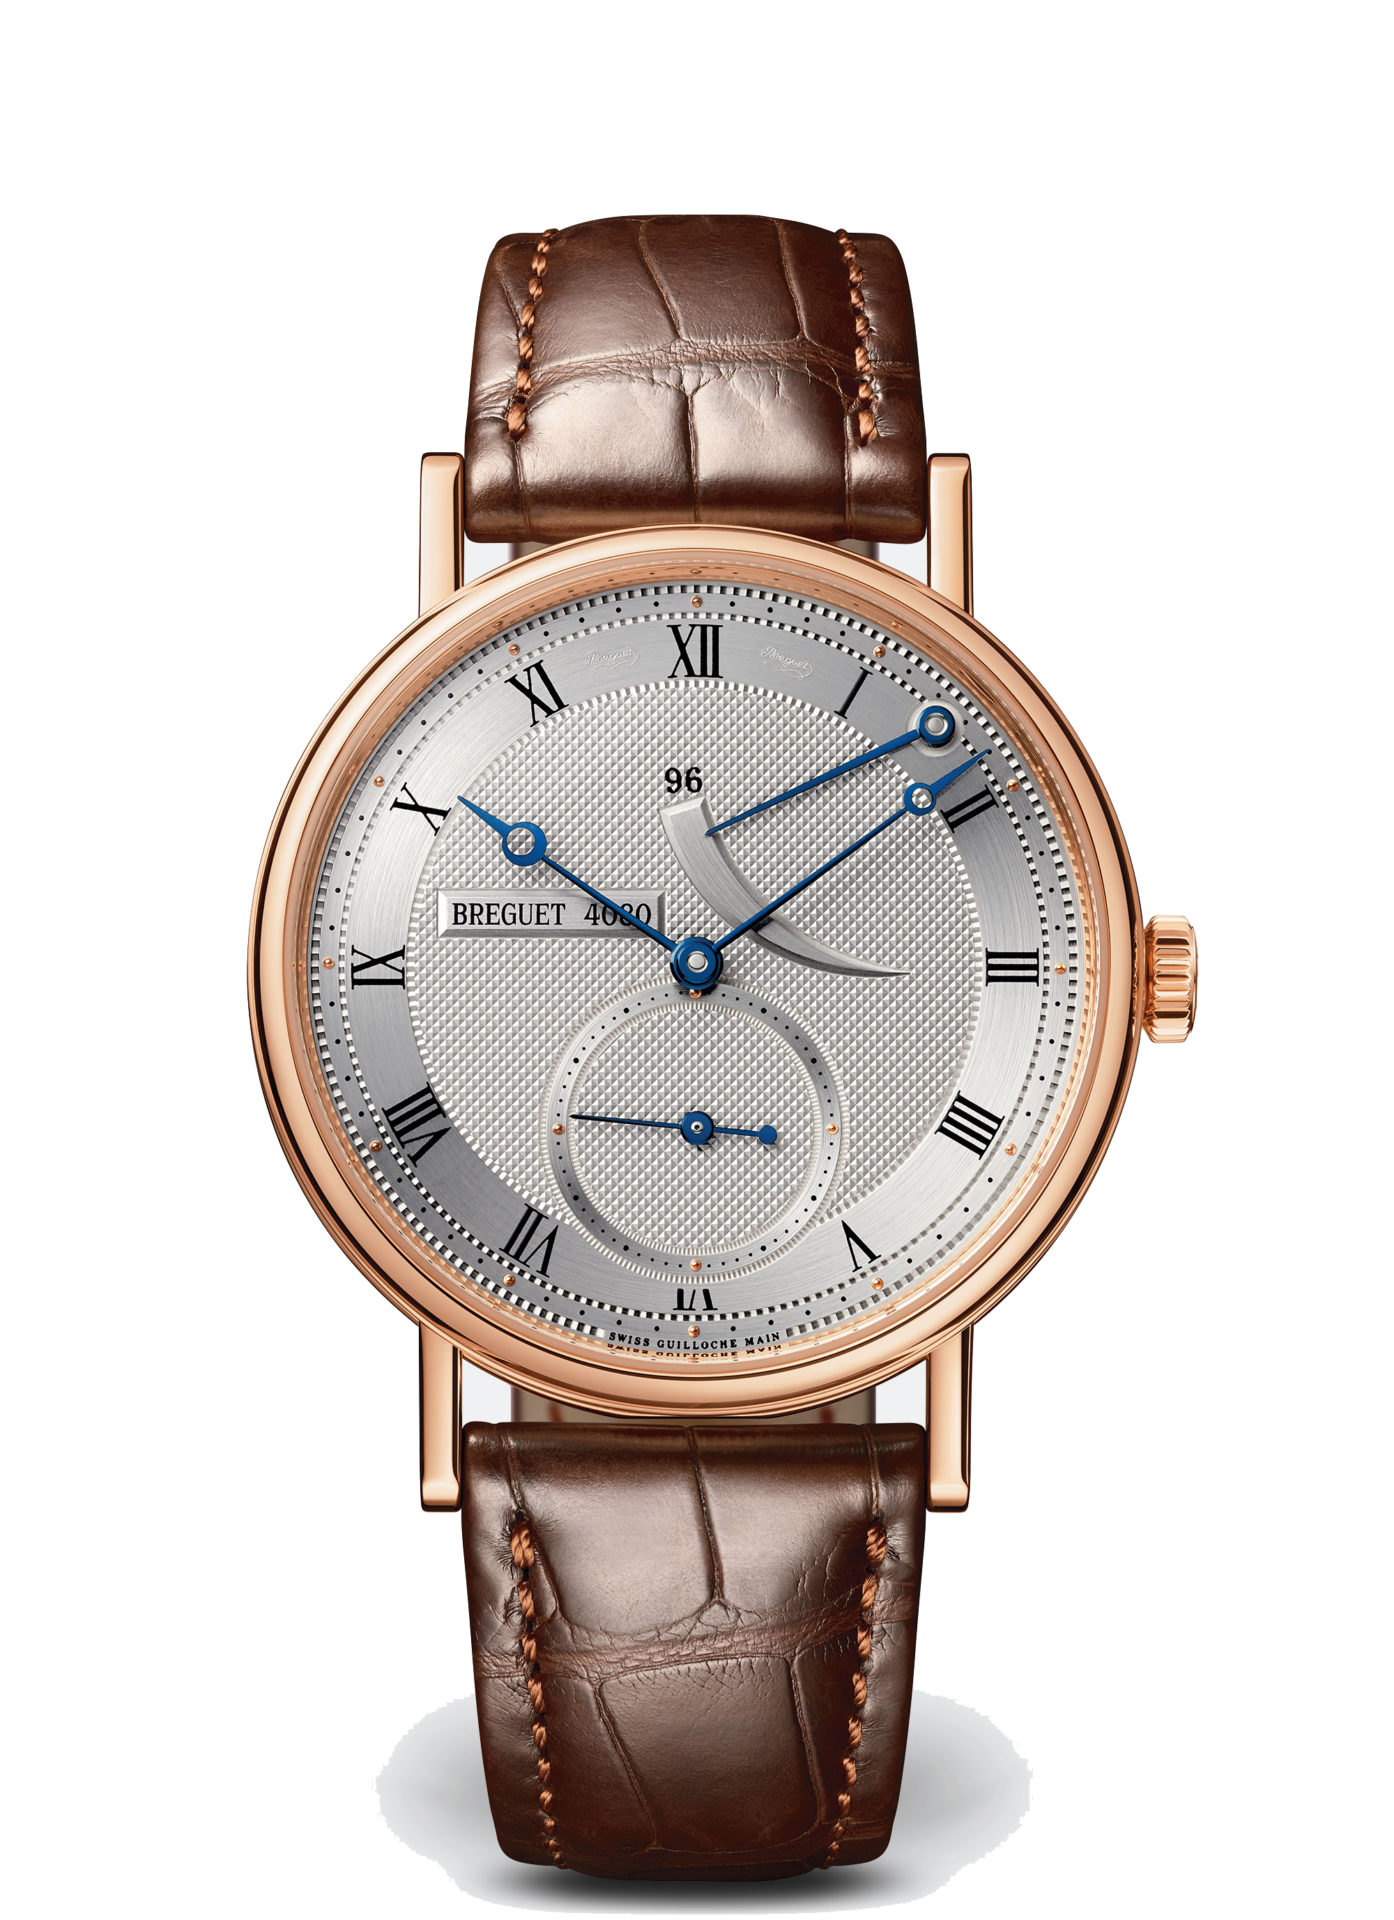 Breguet-Classique-5277-Hall-of-Time-5277br-12-9v6 copie